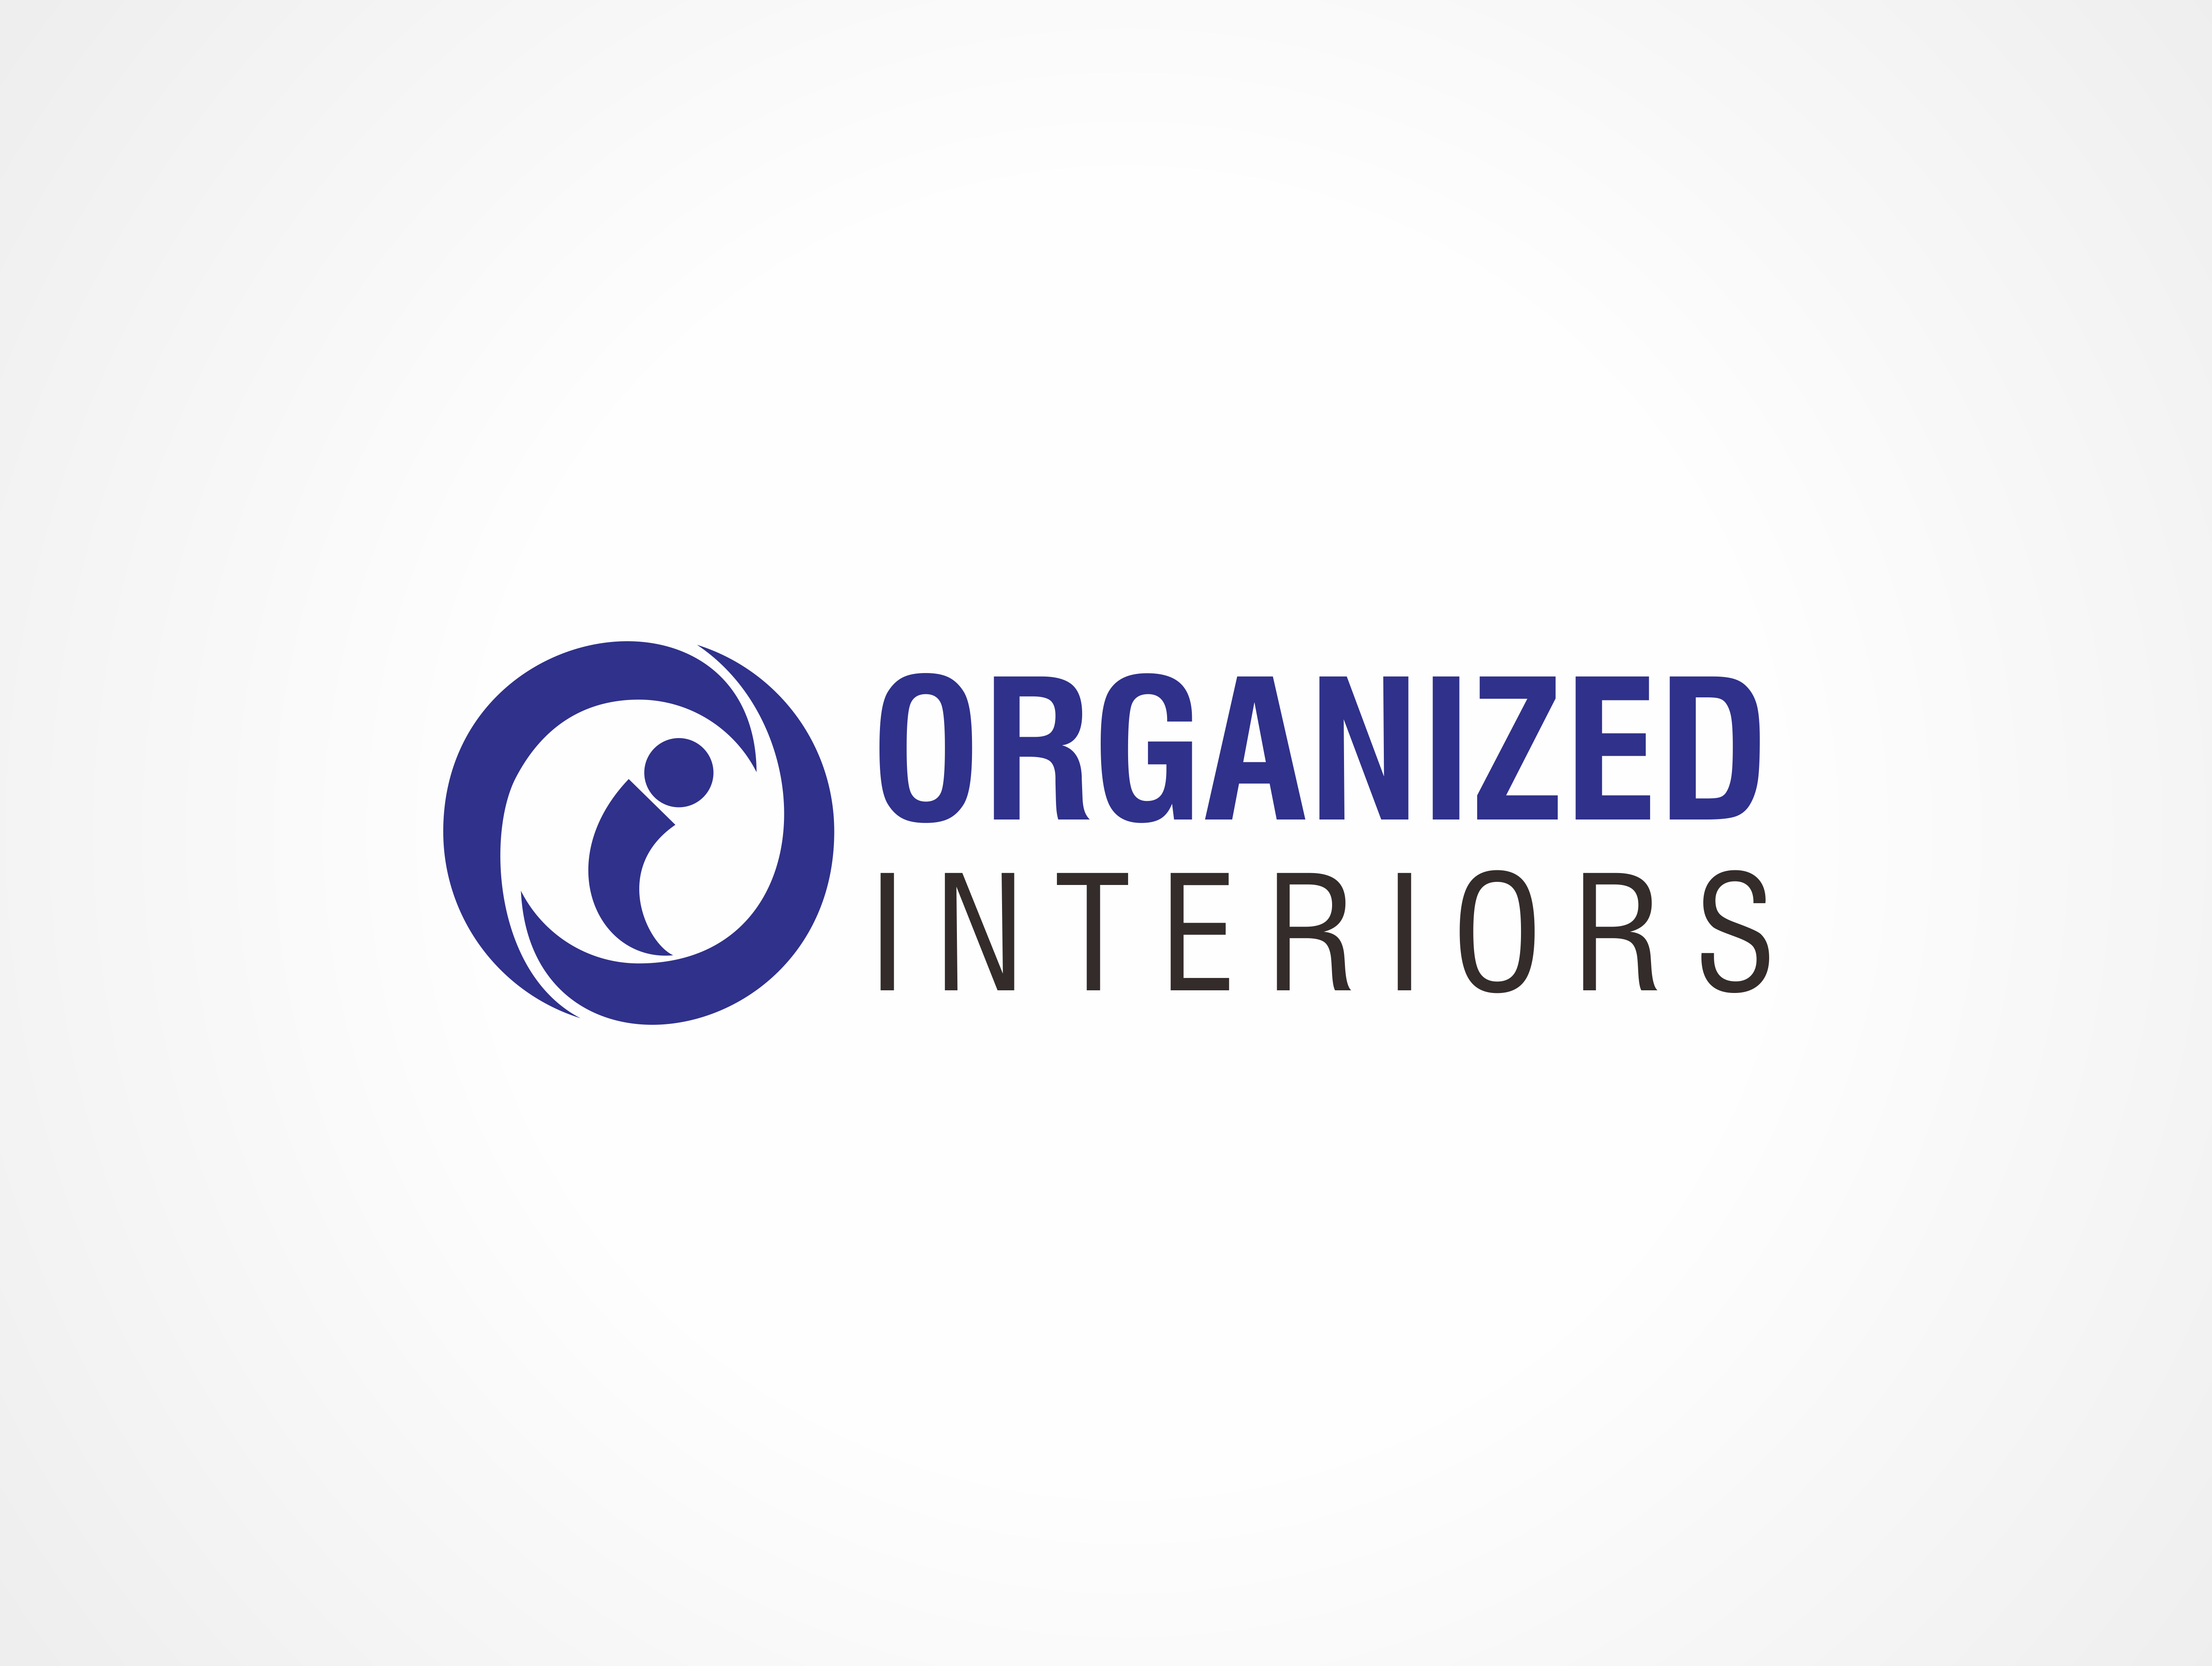 Logo Design by Armada Jamaluddin - Entry No. 53 in the Logo Design Contest Imaginative Logo Design for Organized Interiors.